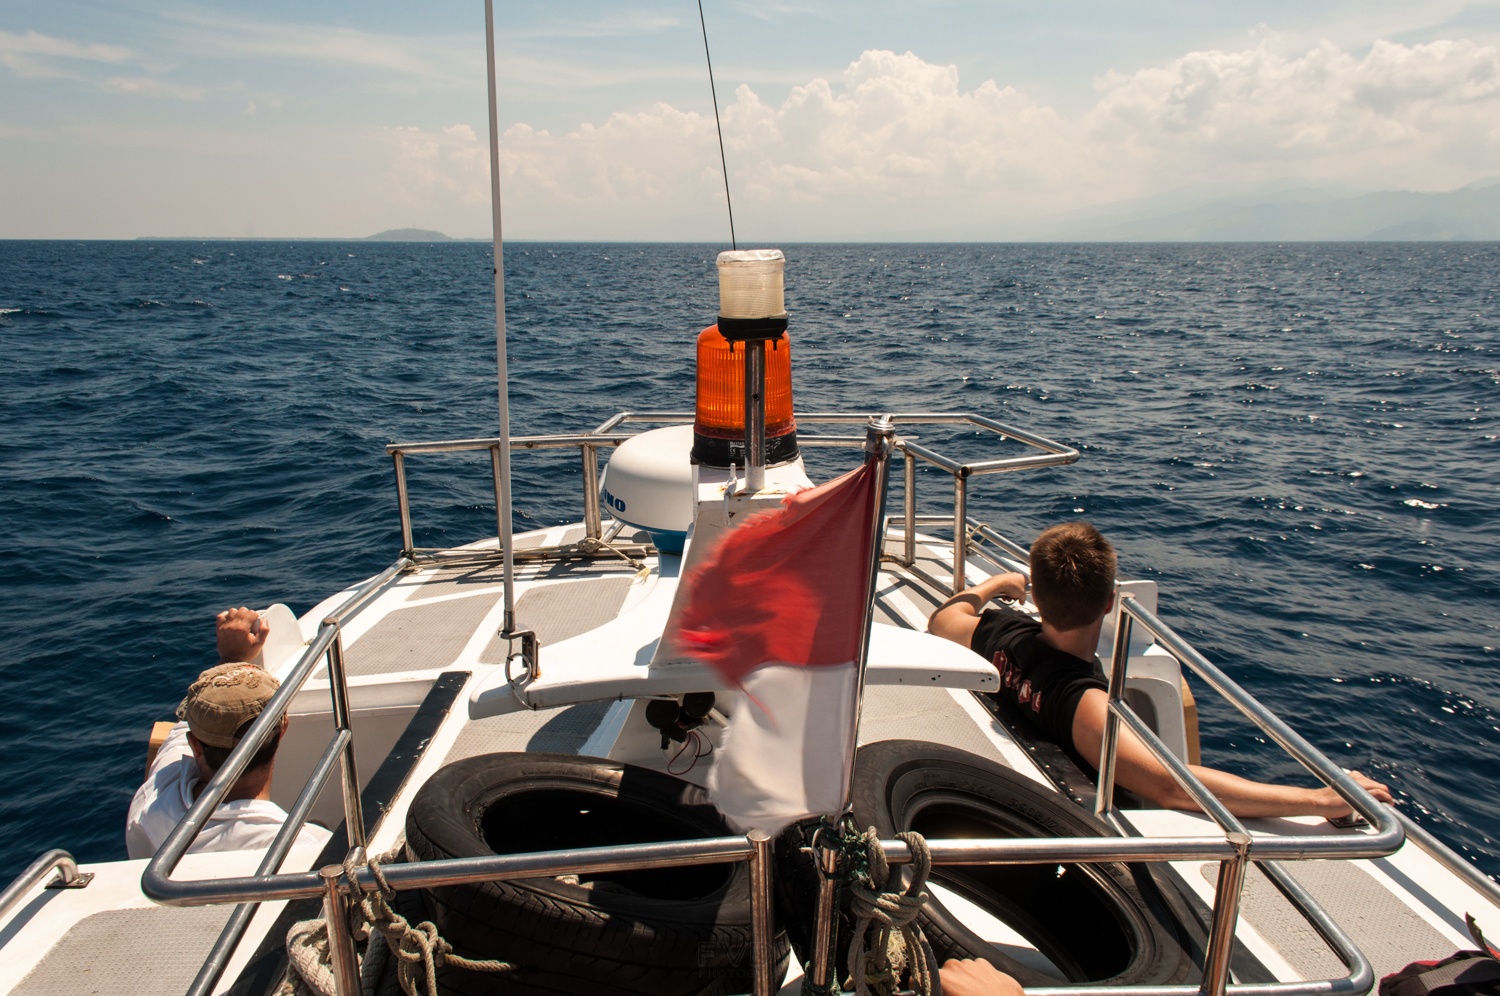 En route to the Gili Islands, Indonesia. November 2012